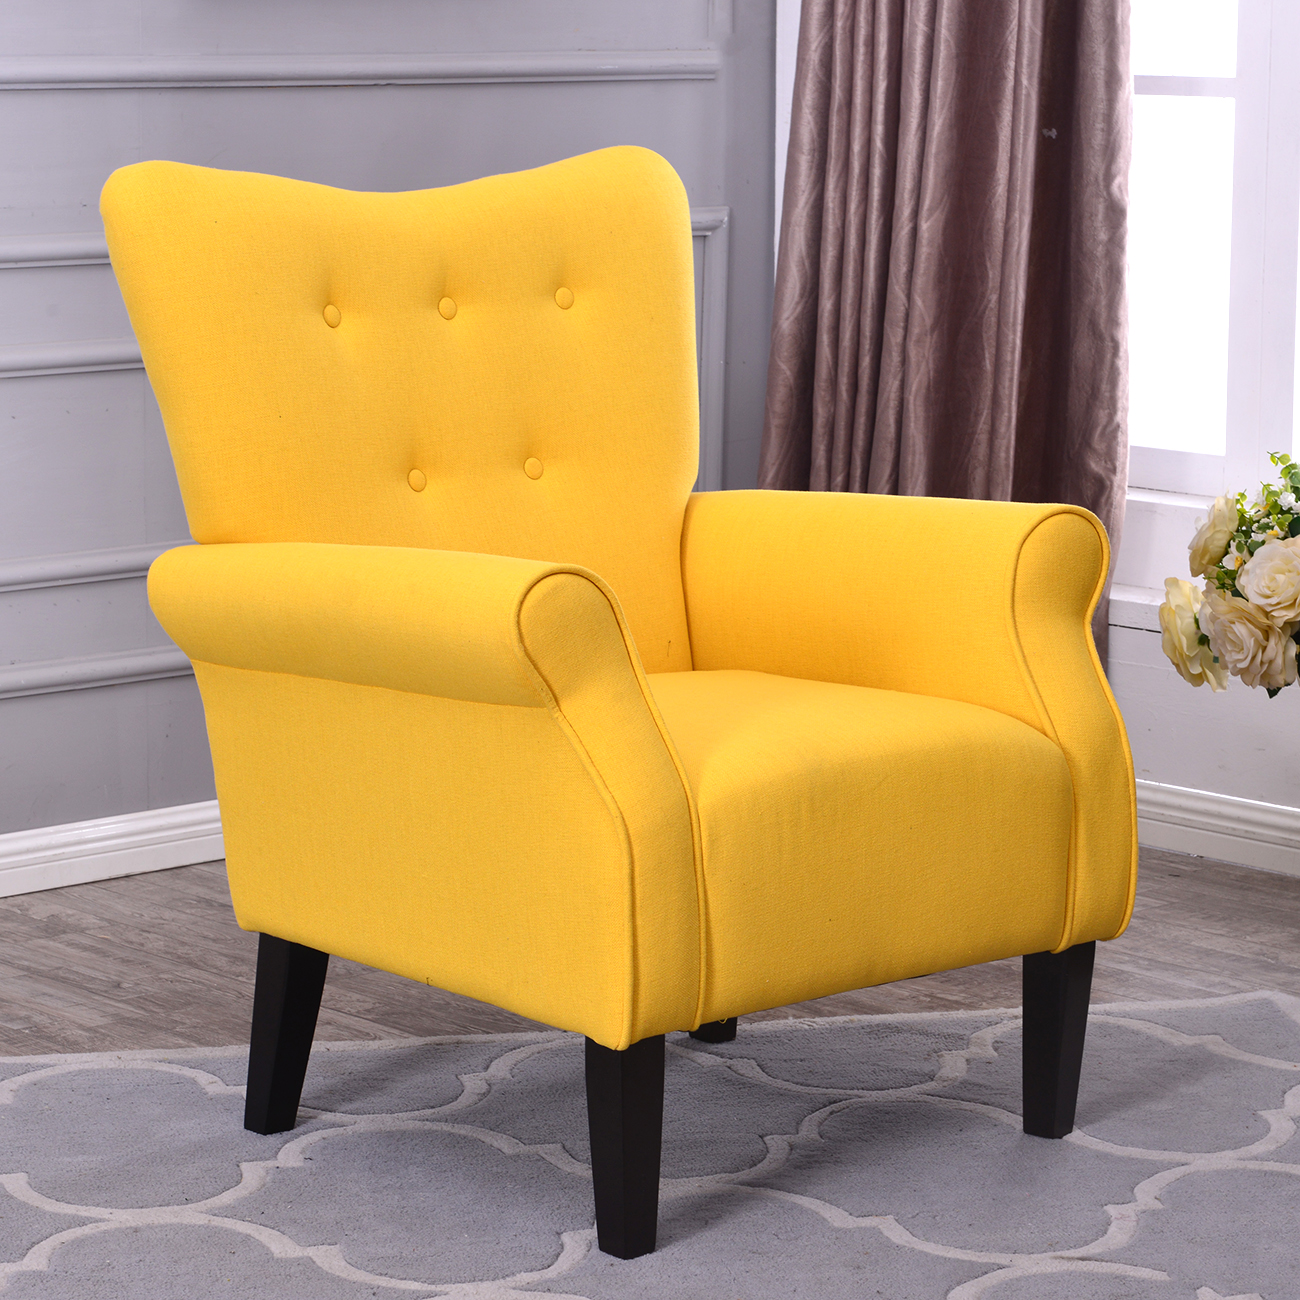 Belleze Modern Accent Chair Roll Arm Living Room Bedroom Wood Leg Linen, Citrine Yellow